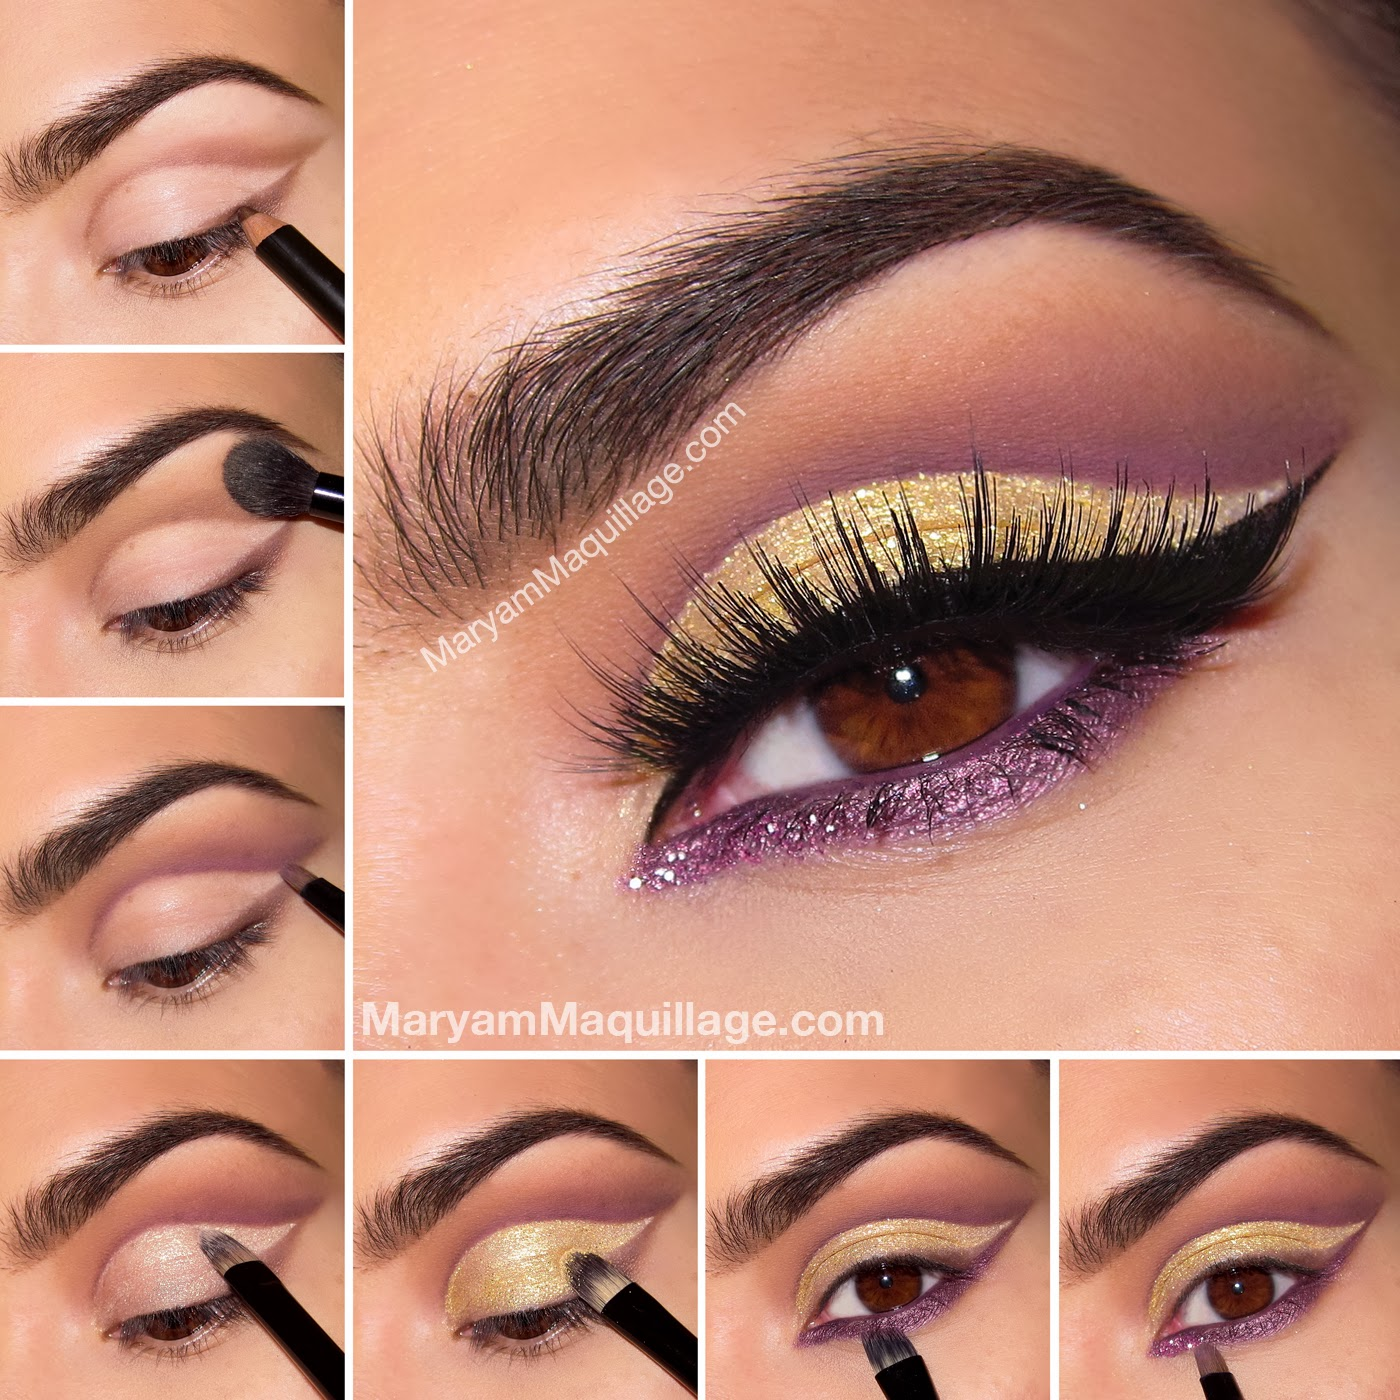 Maryam Maquillage Quot Bohemian Fairy Quot Makeup For Valentine S Day